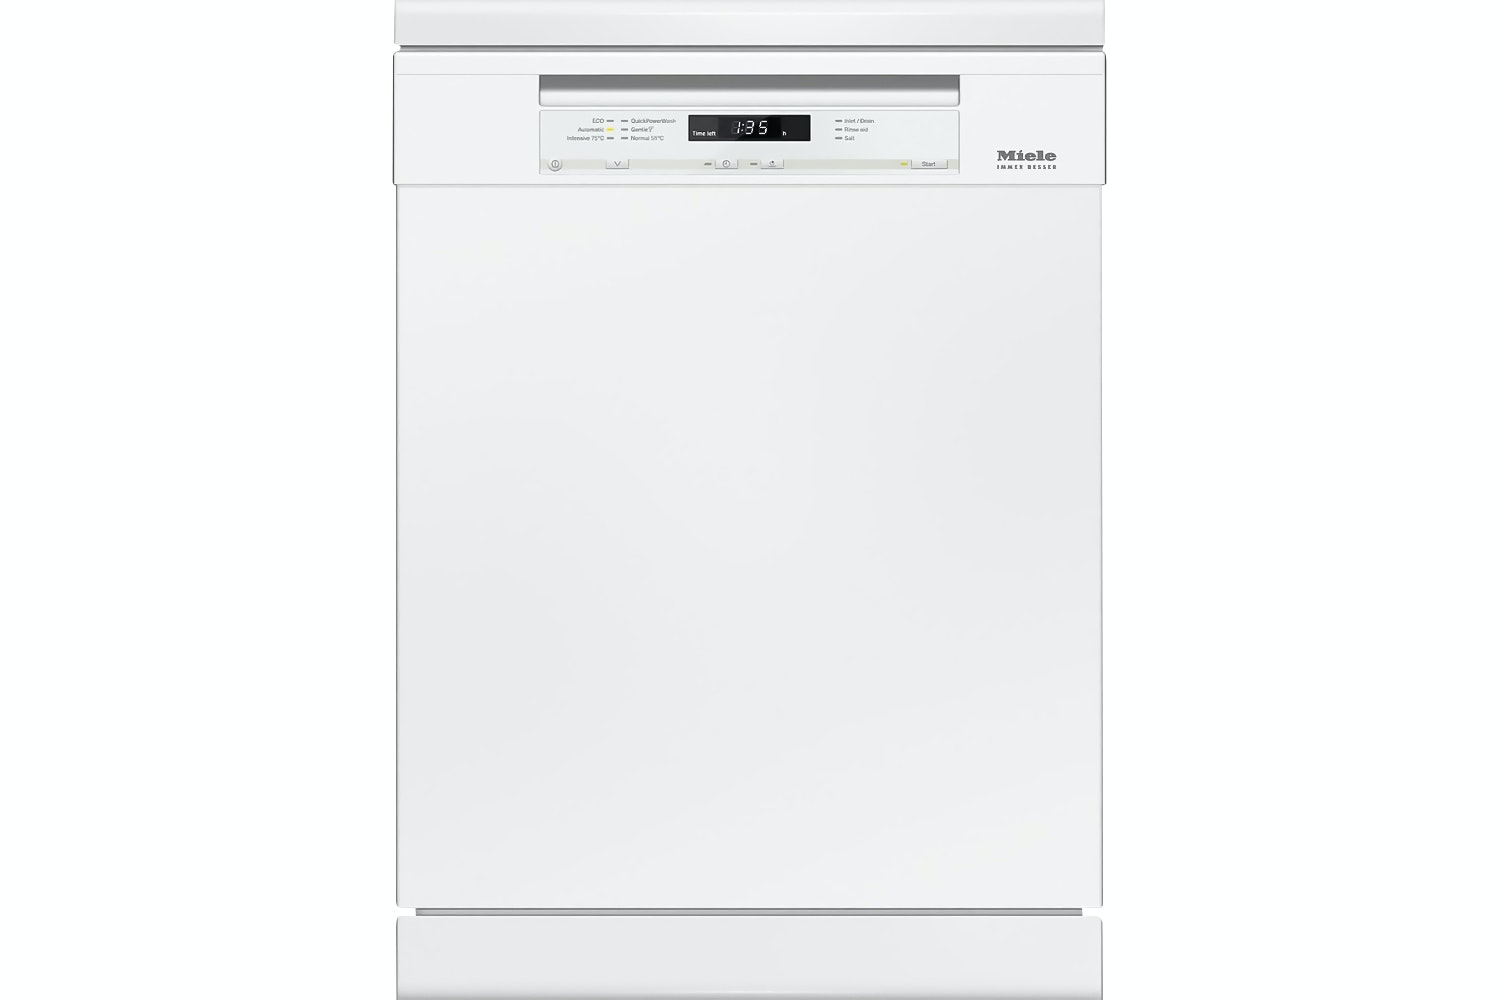 Miele G 6620 SC  Freestanding dishwashers   with 3D cutlery tray+ and 44 dB(A) for maximum convenience